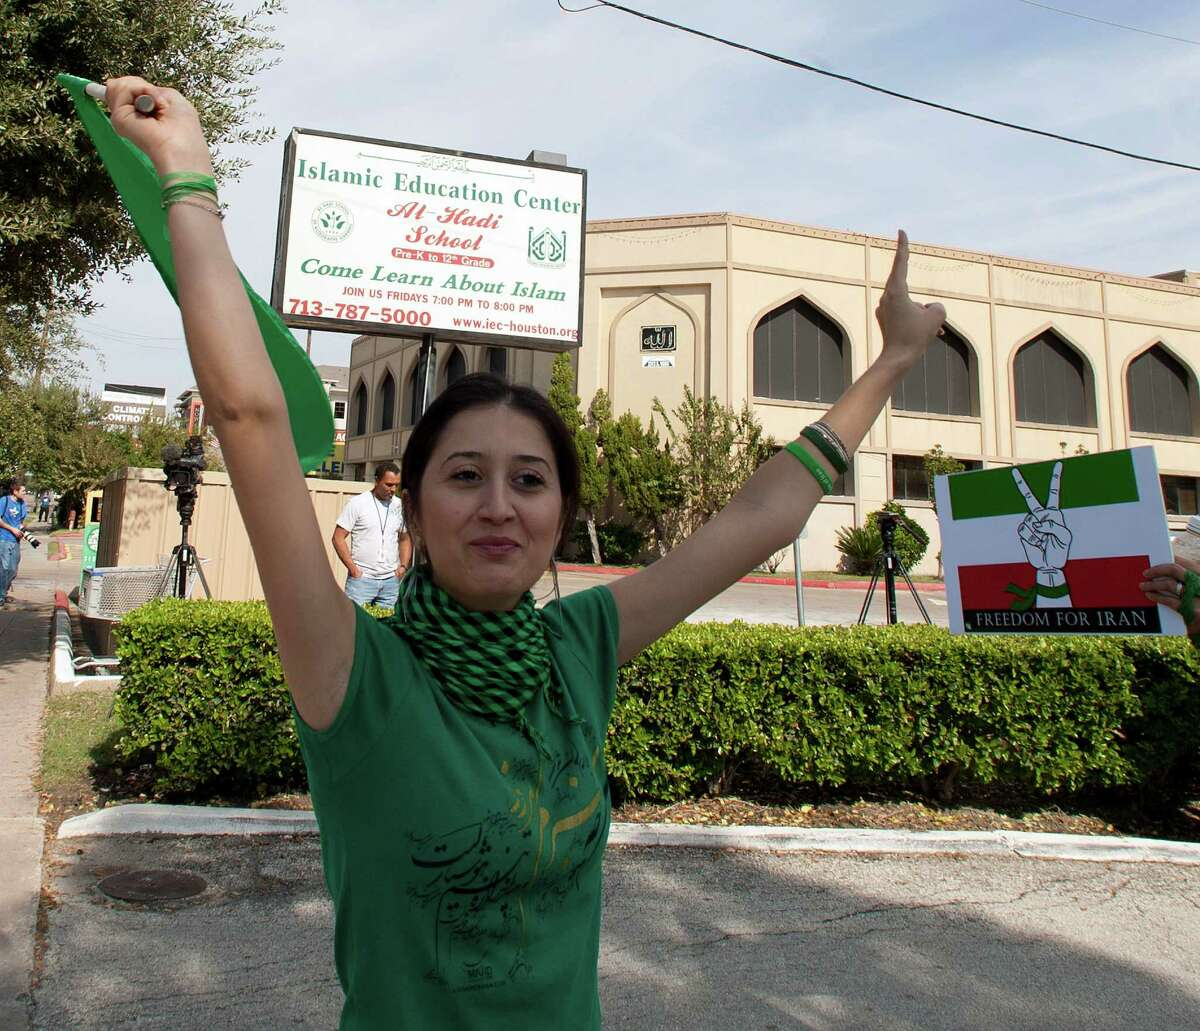 Gelareh Bagherzadeh protests outside the Islamic Education Center in Houston, Texas on Nov. 13, 2009. Prosecutors sayAli Mahwood-Awad Irsan, a conservative Muslim, shot and killed Bagherzadeh in January 2012 because she encouraged his daughter to marry 28-year-old Coty Beavers, a Christian man.